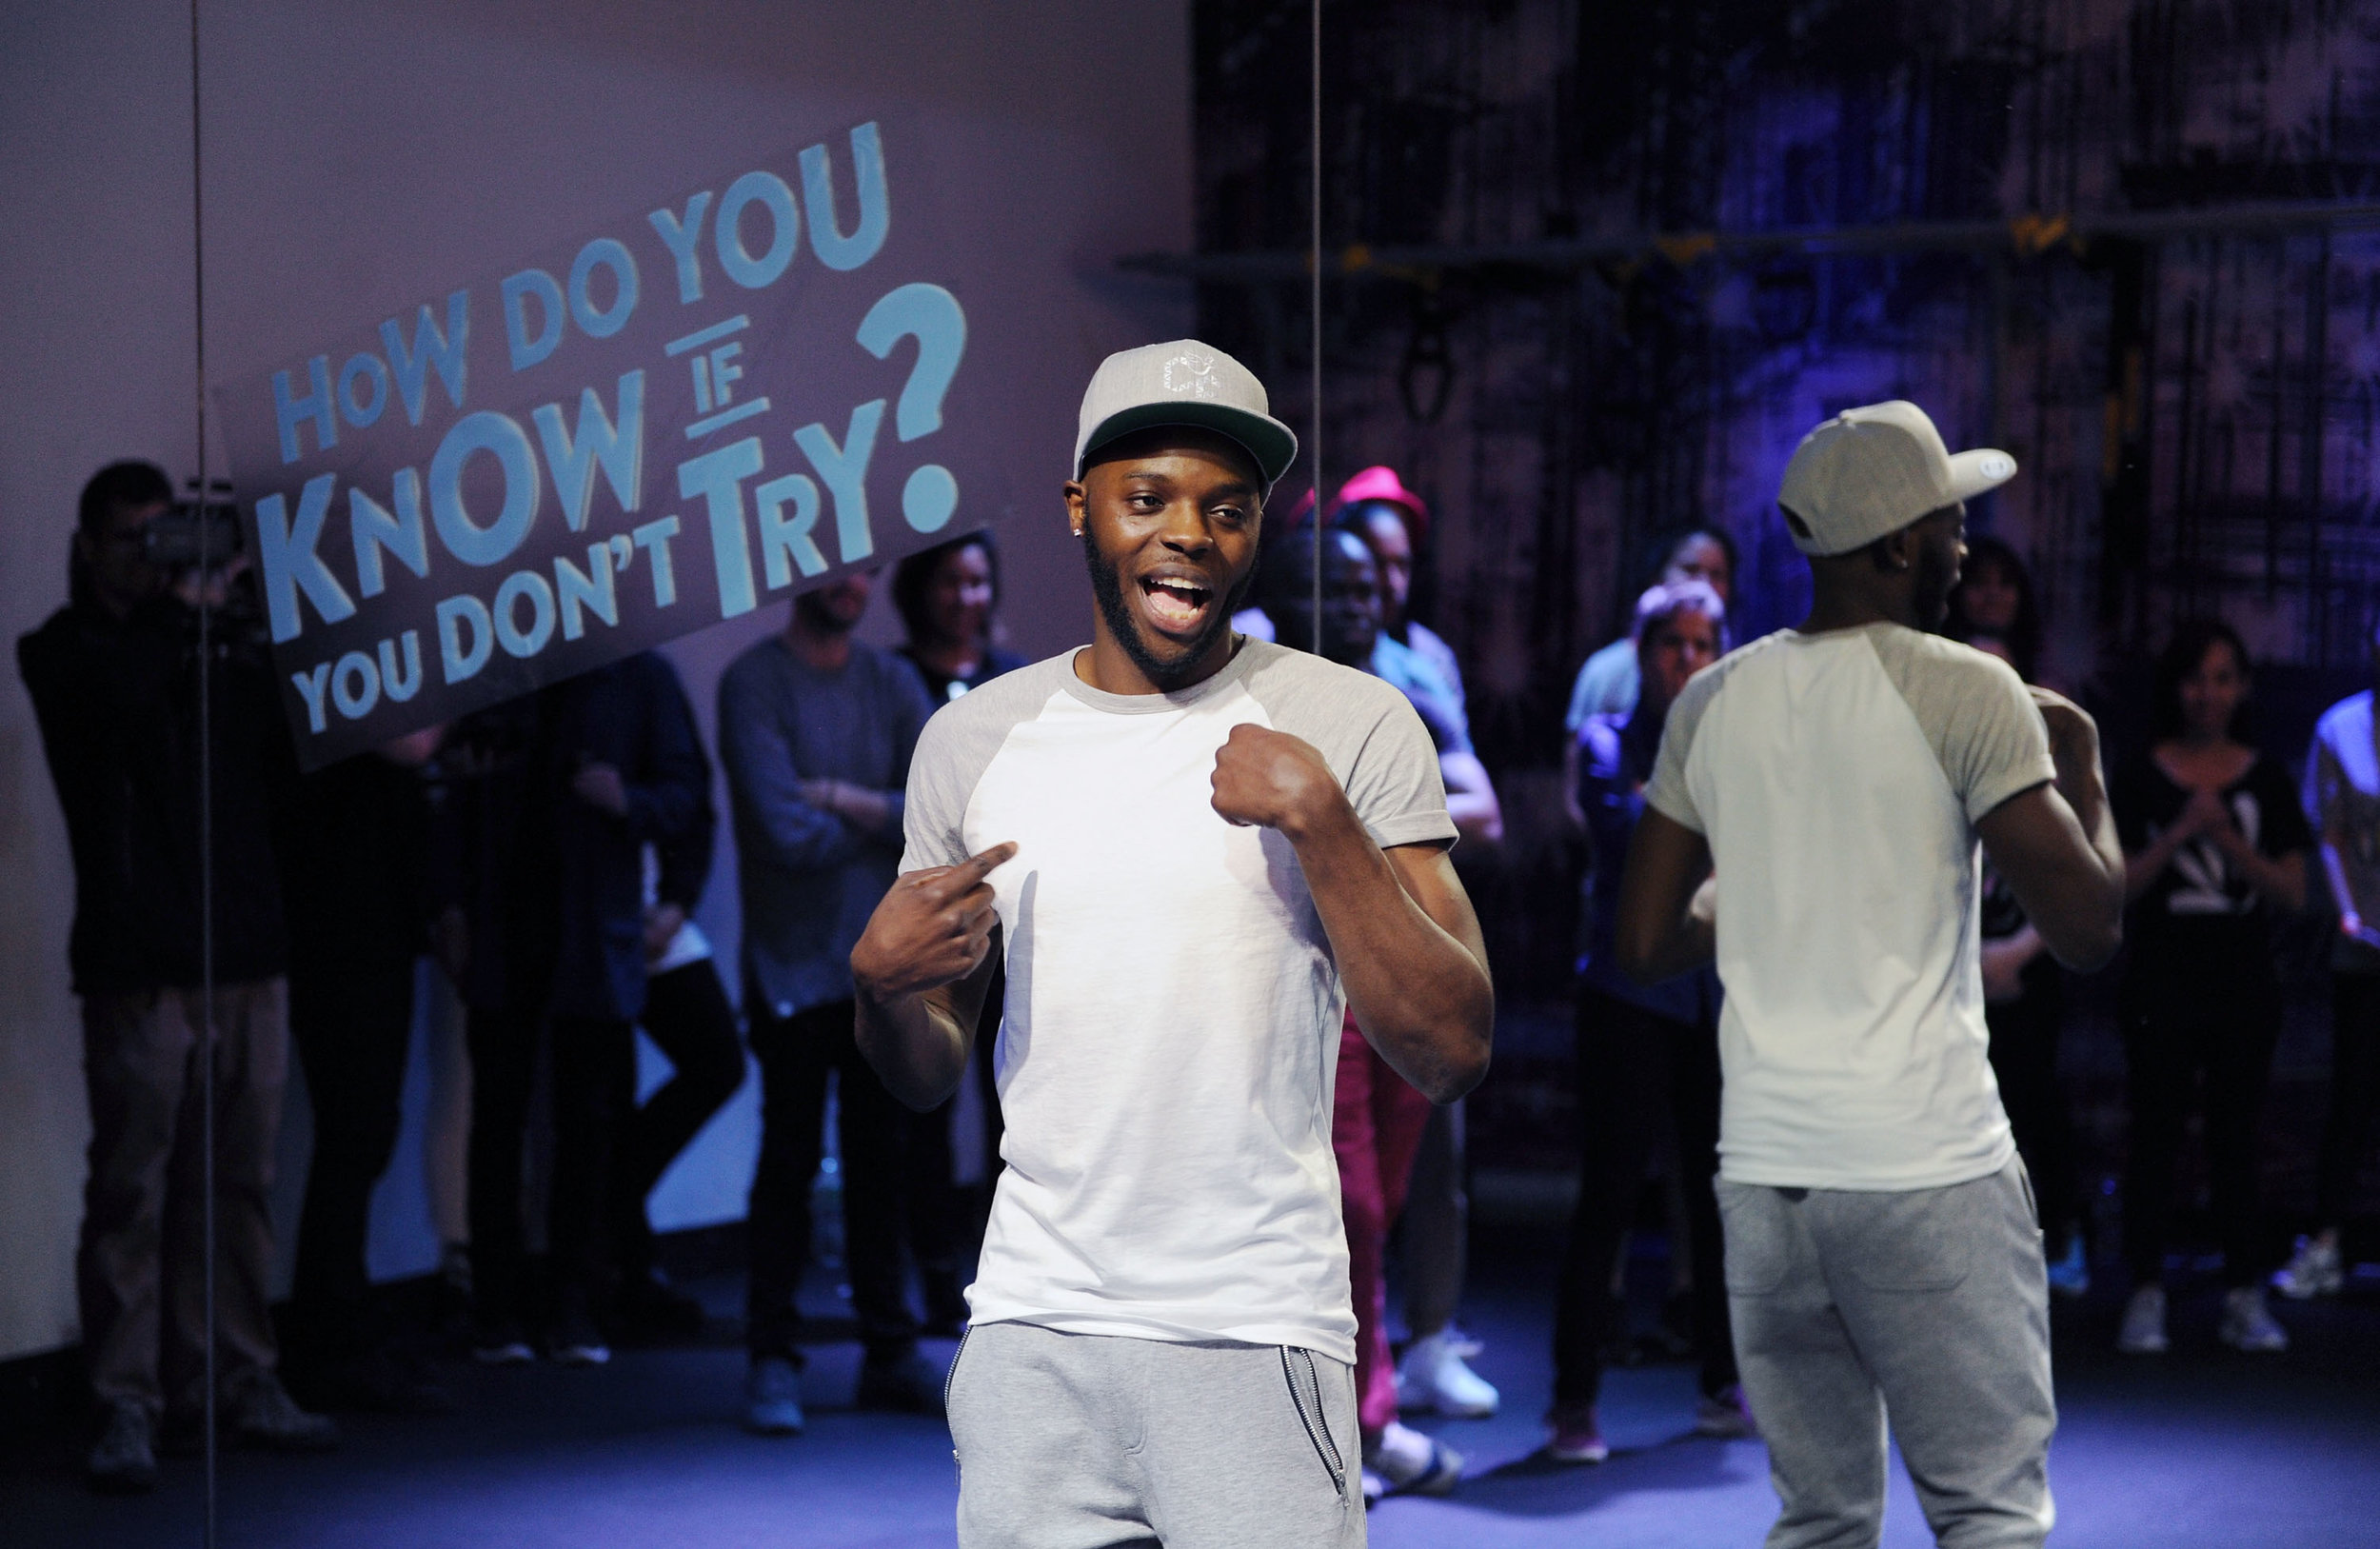 """""""Deaf Dance Instructor Christopher Fonseca, 27, Teaches Class To Local Deaf Community Members As Part Of His Global Tour As Part Of The New Smirnoff ICE Electric Flavors """"Keep It Moving"""" Campaign On Tuesday May 3, 2016 In New York, NY."""""""